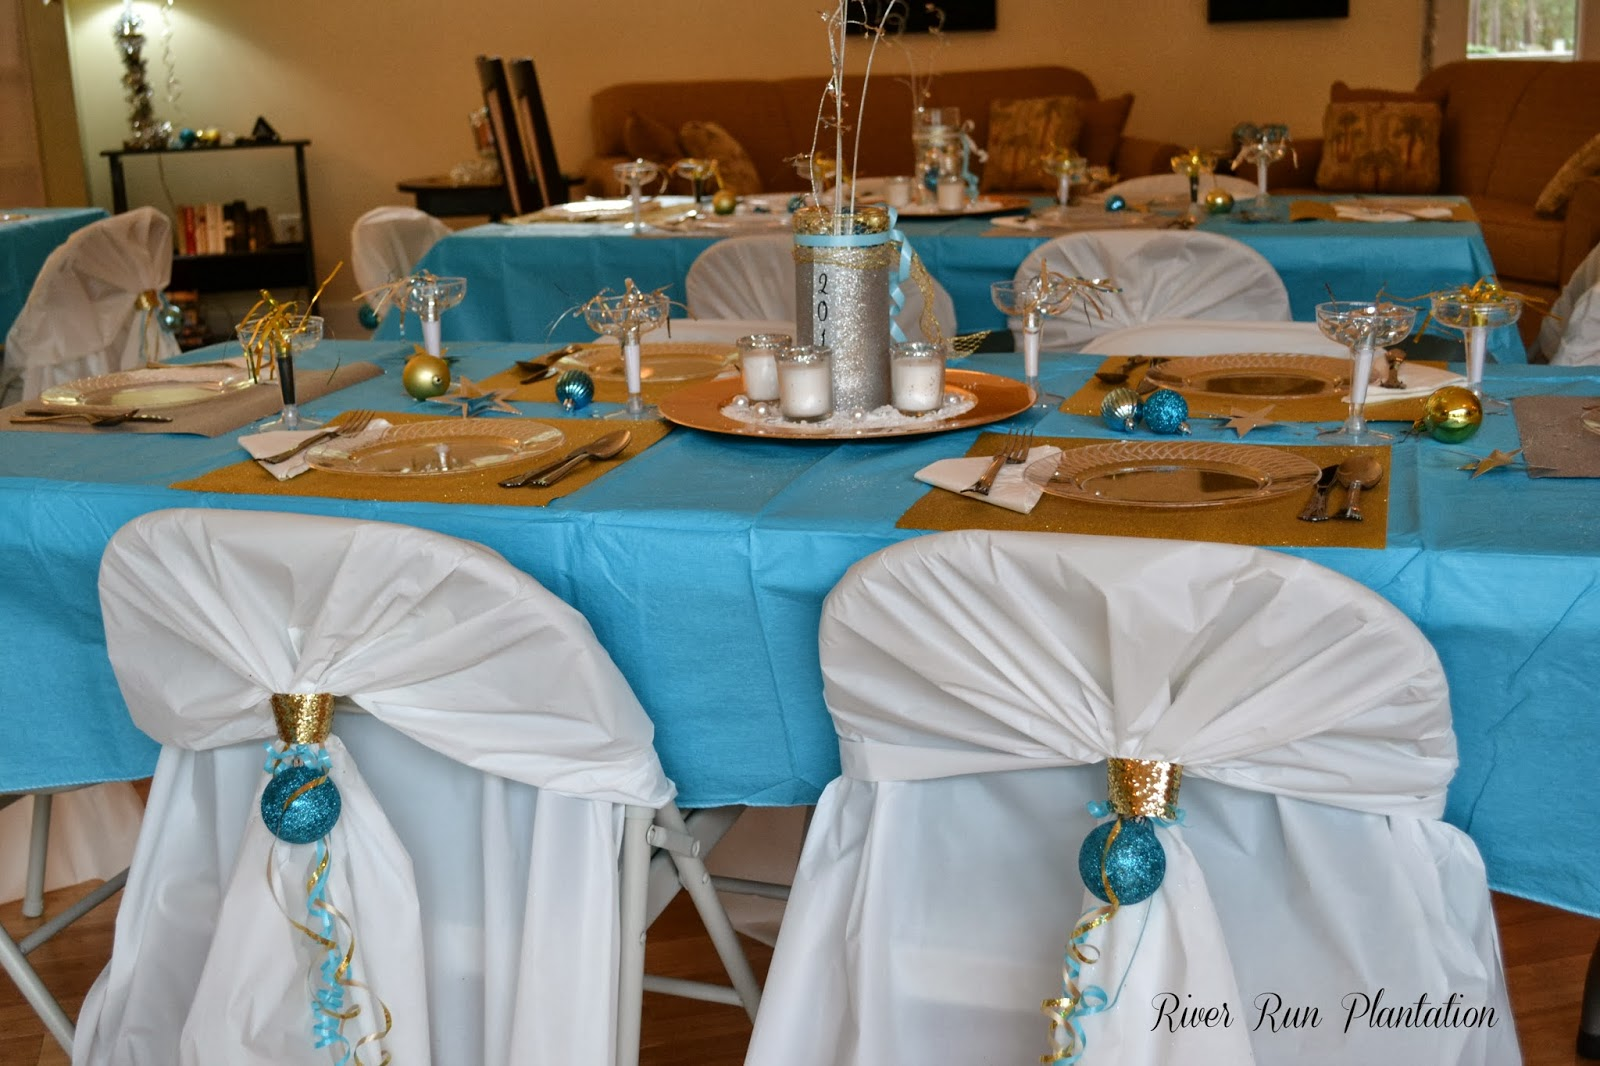 Diy Folding Chair Covers Solid Oak Table And Chairs Sweet Inspirations By Jp Designs New Year 39s Eve In The